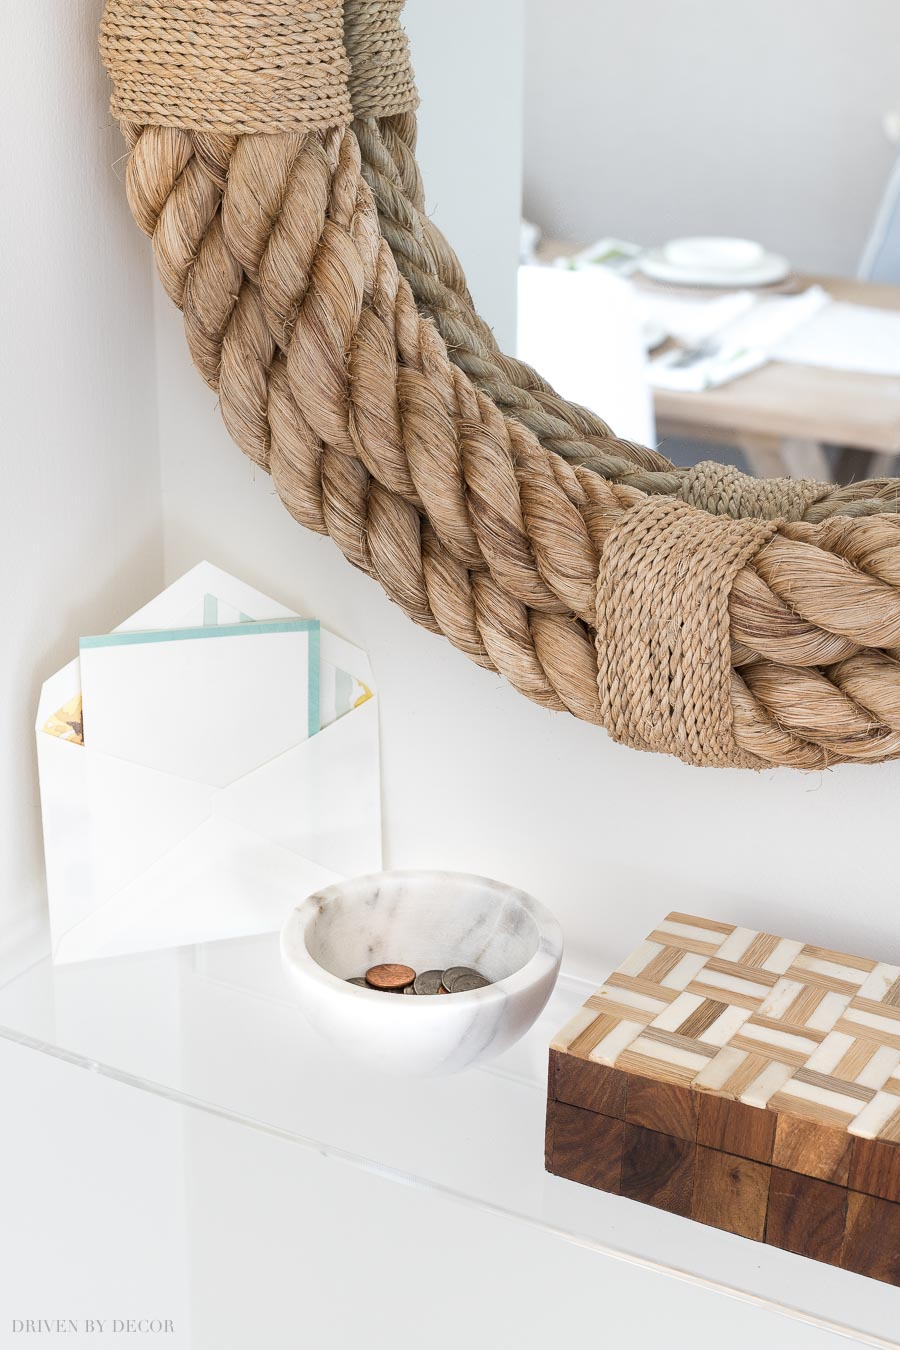 Love this stylish acrylic shelf for holding change, keys, and mail as you go in or out through this entryway!